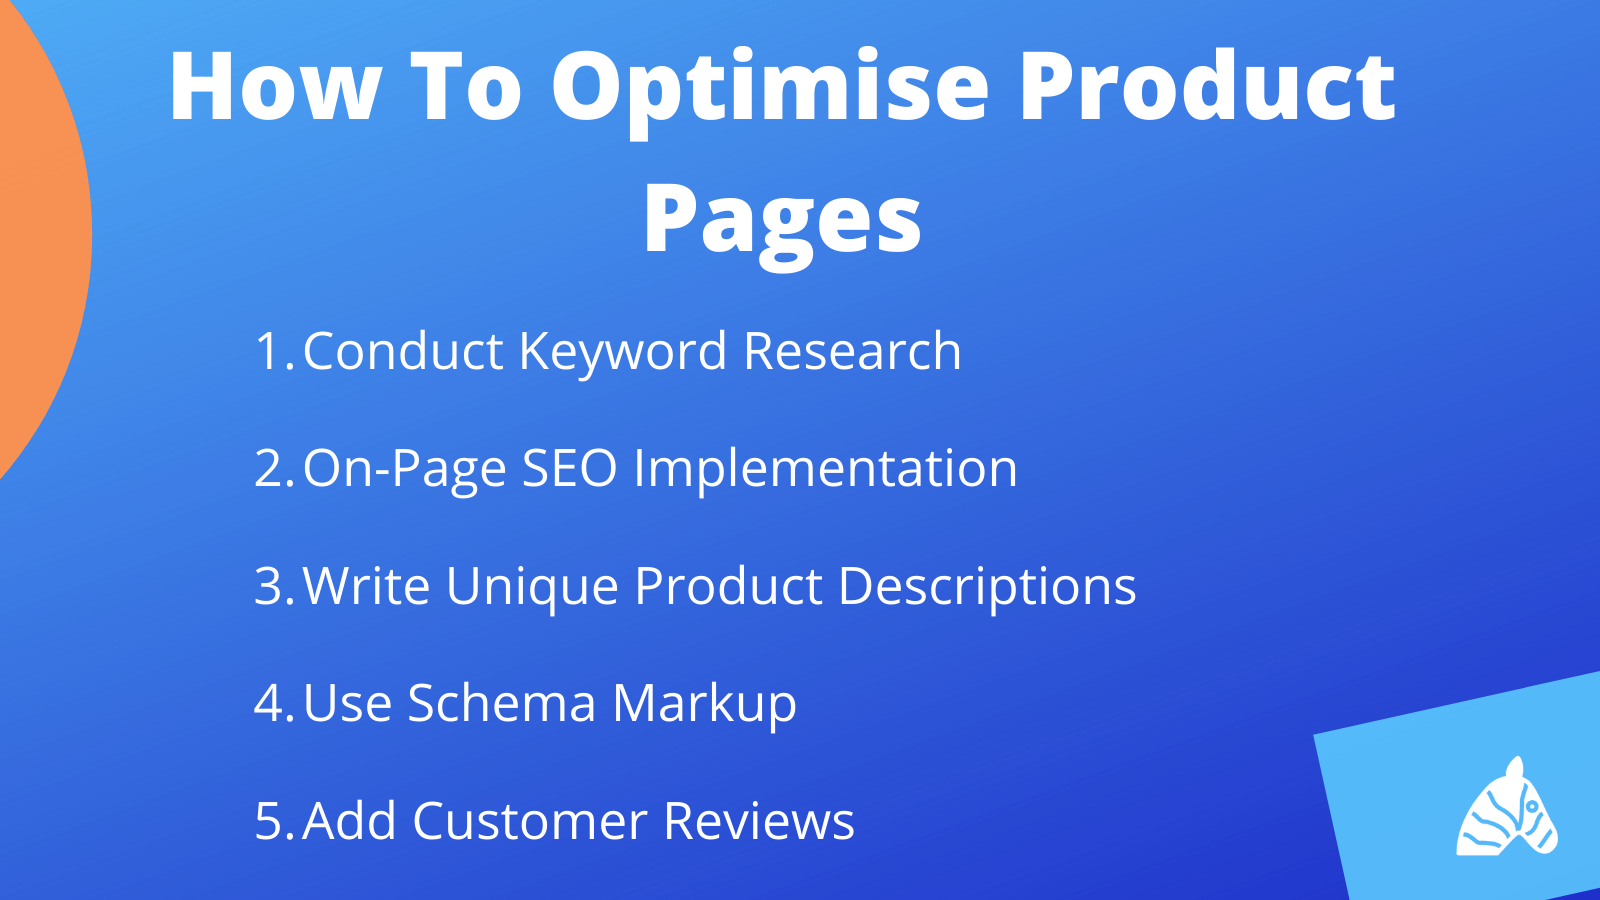 how to optimise your product pages for SEO